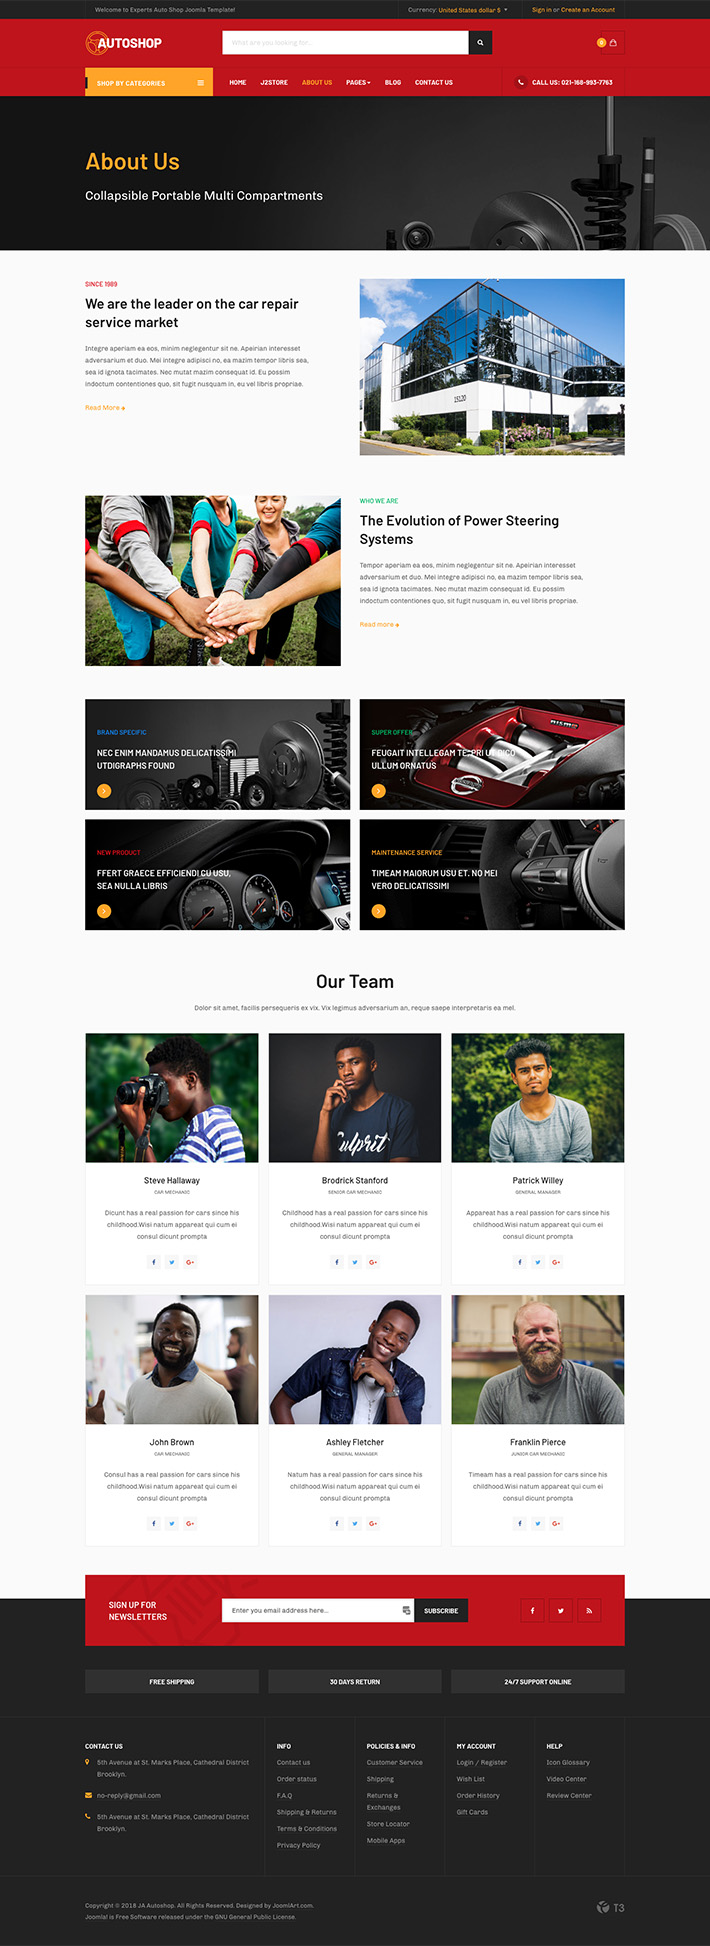 eCommerce Joomla template about us page